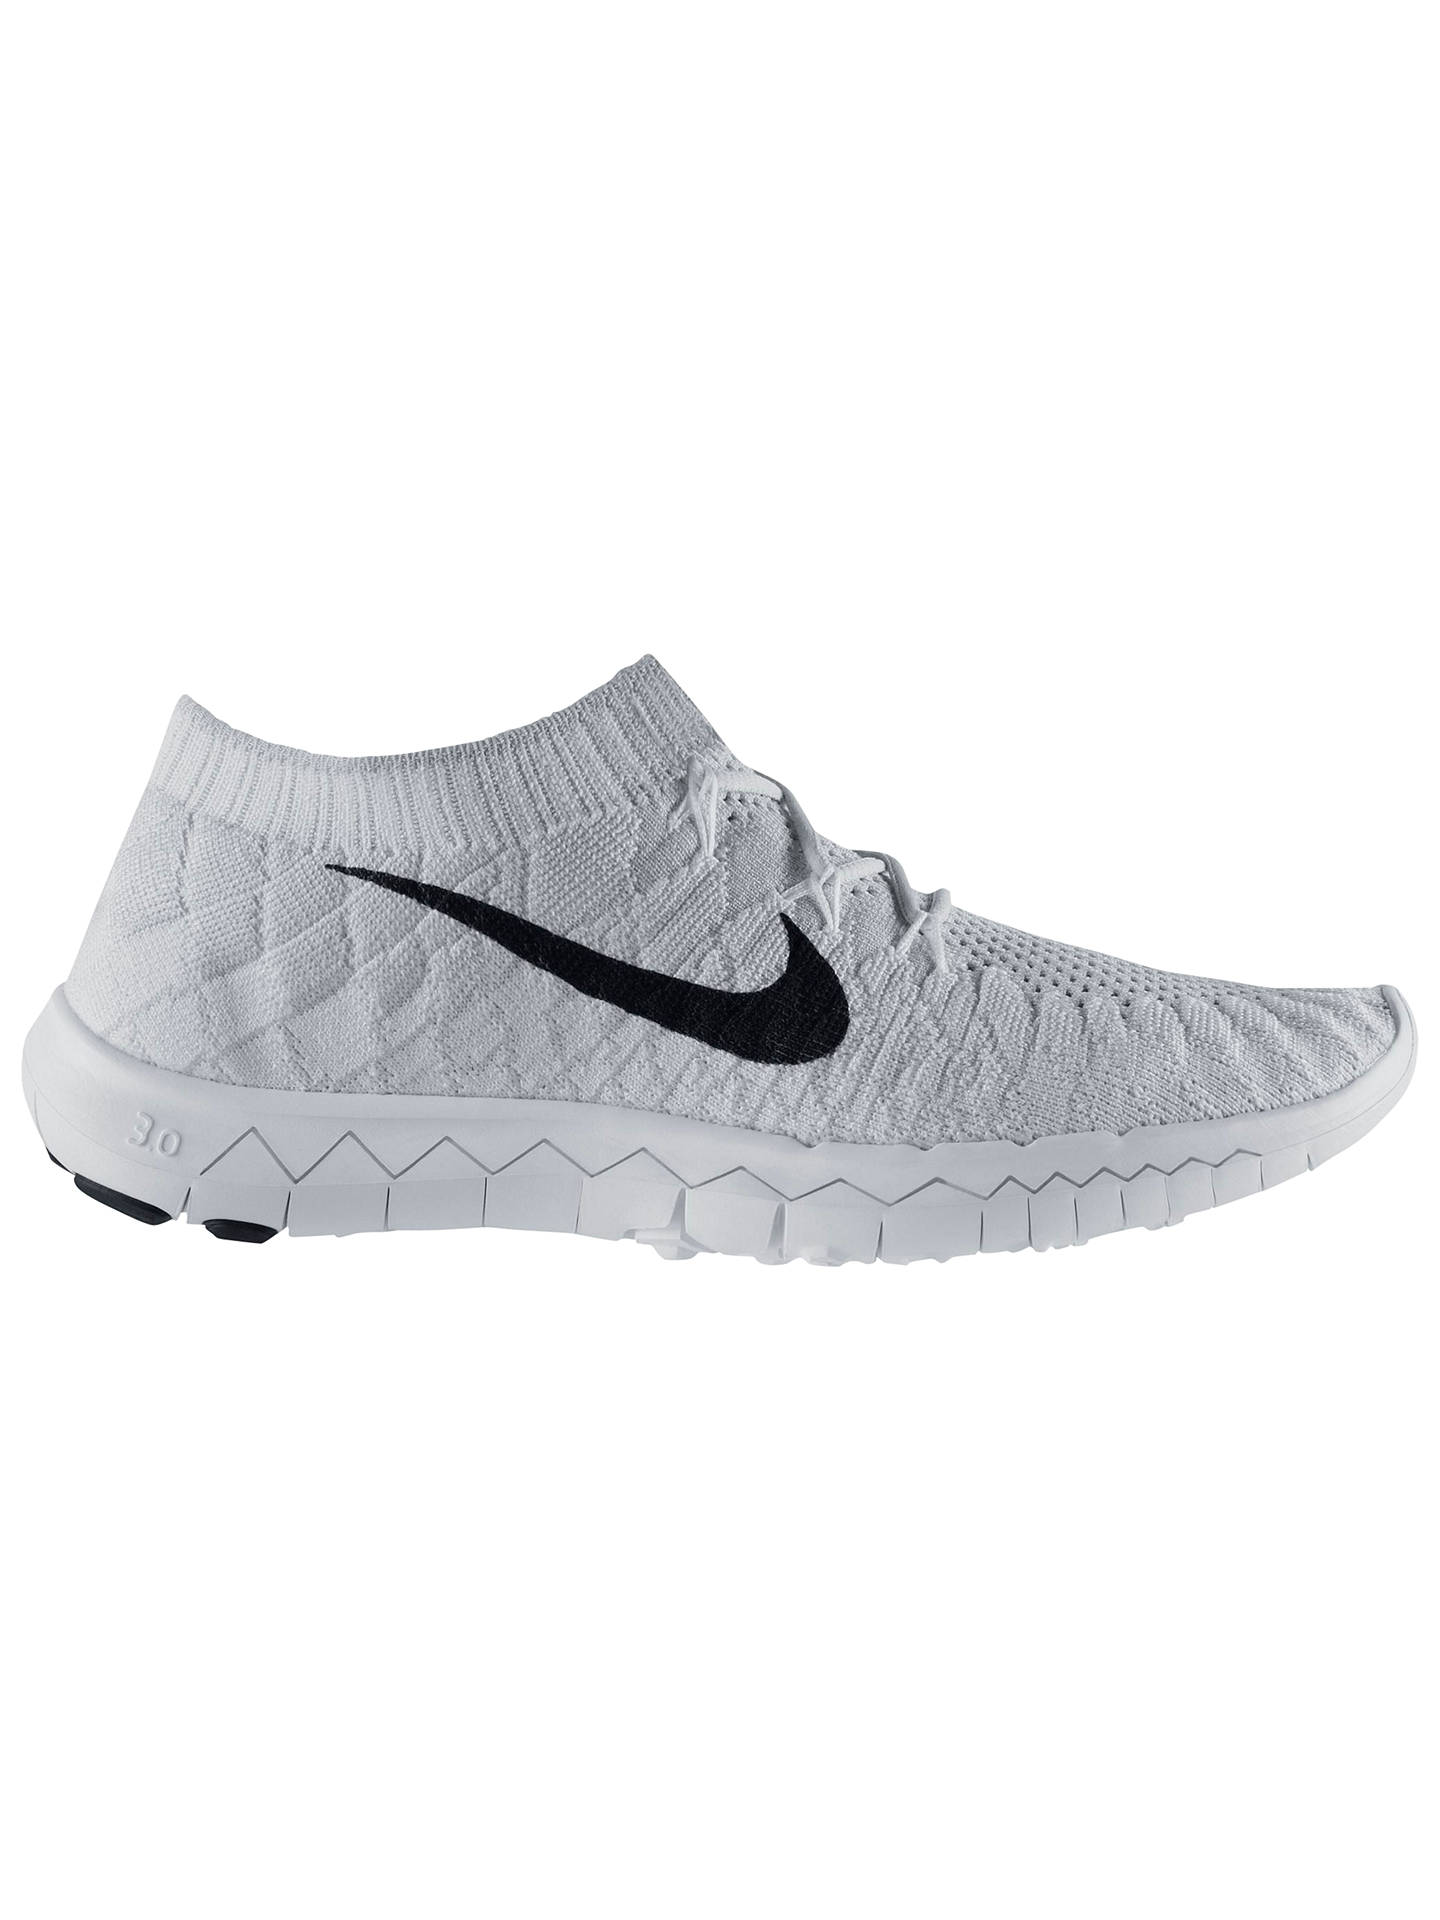 4a4bb97328ff0 Nike Free 3.0 Flyknit Women s Running Shoes at John Lewis   Partners